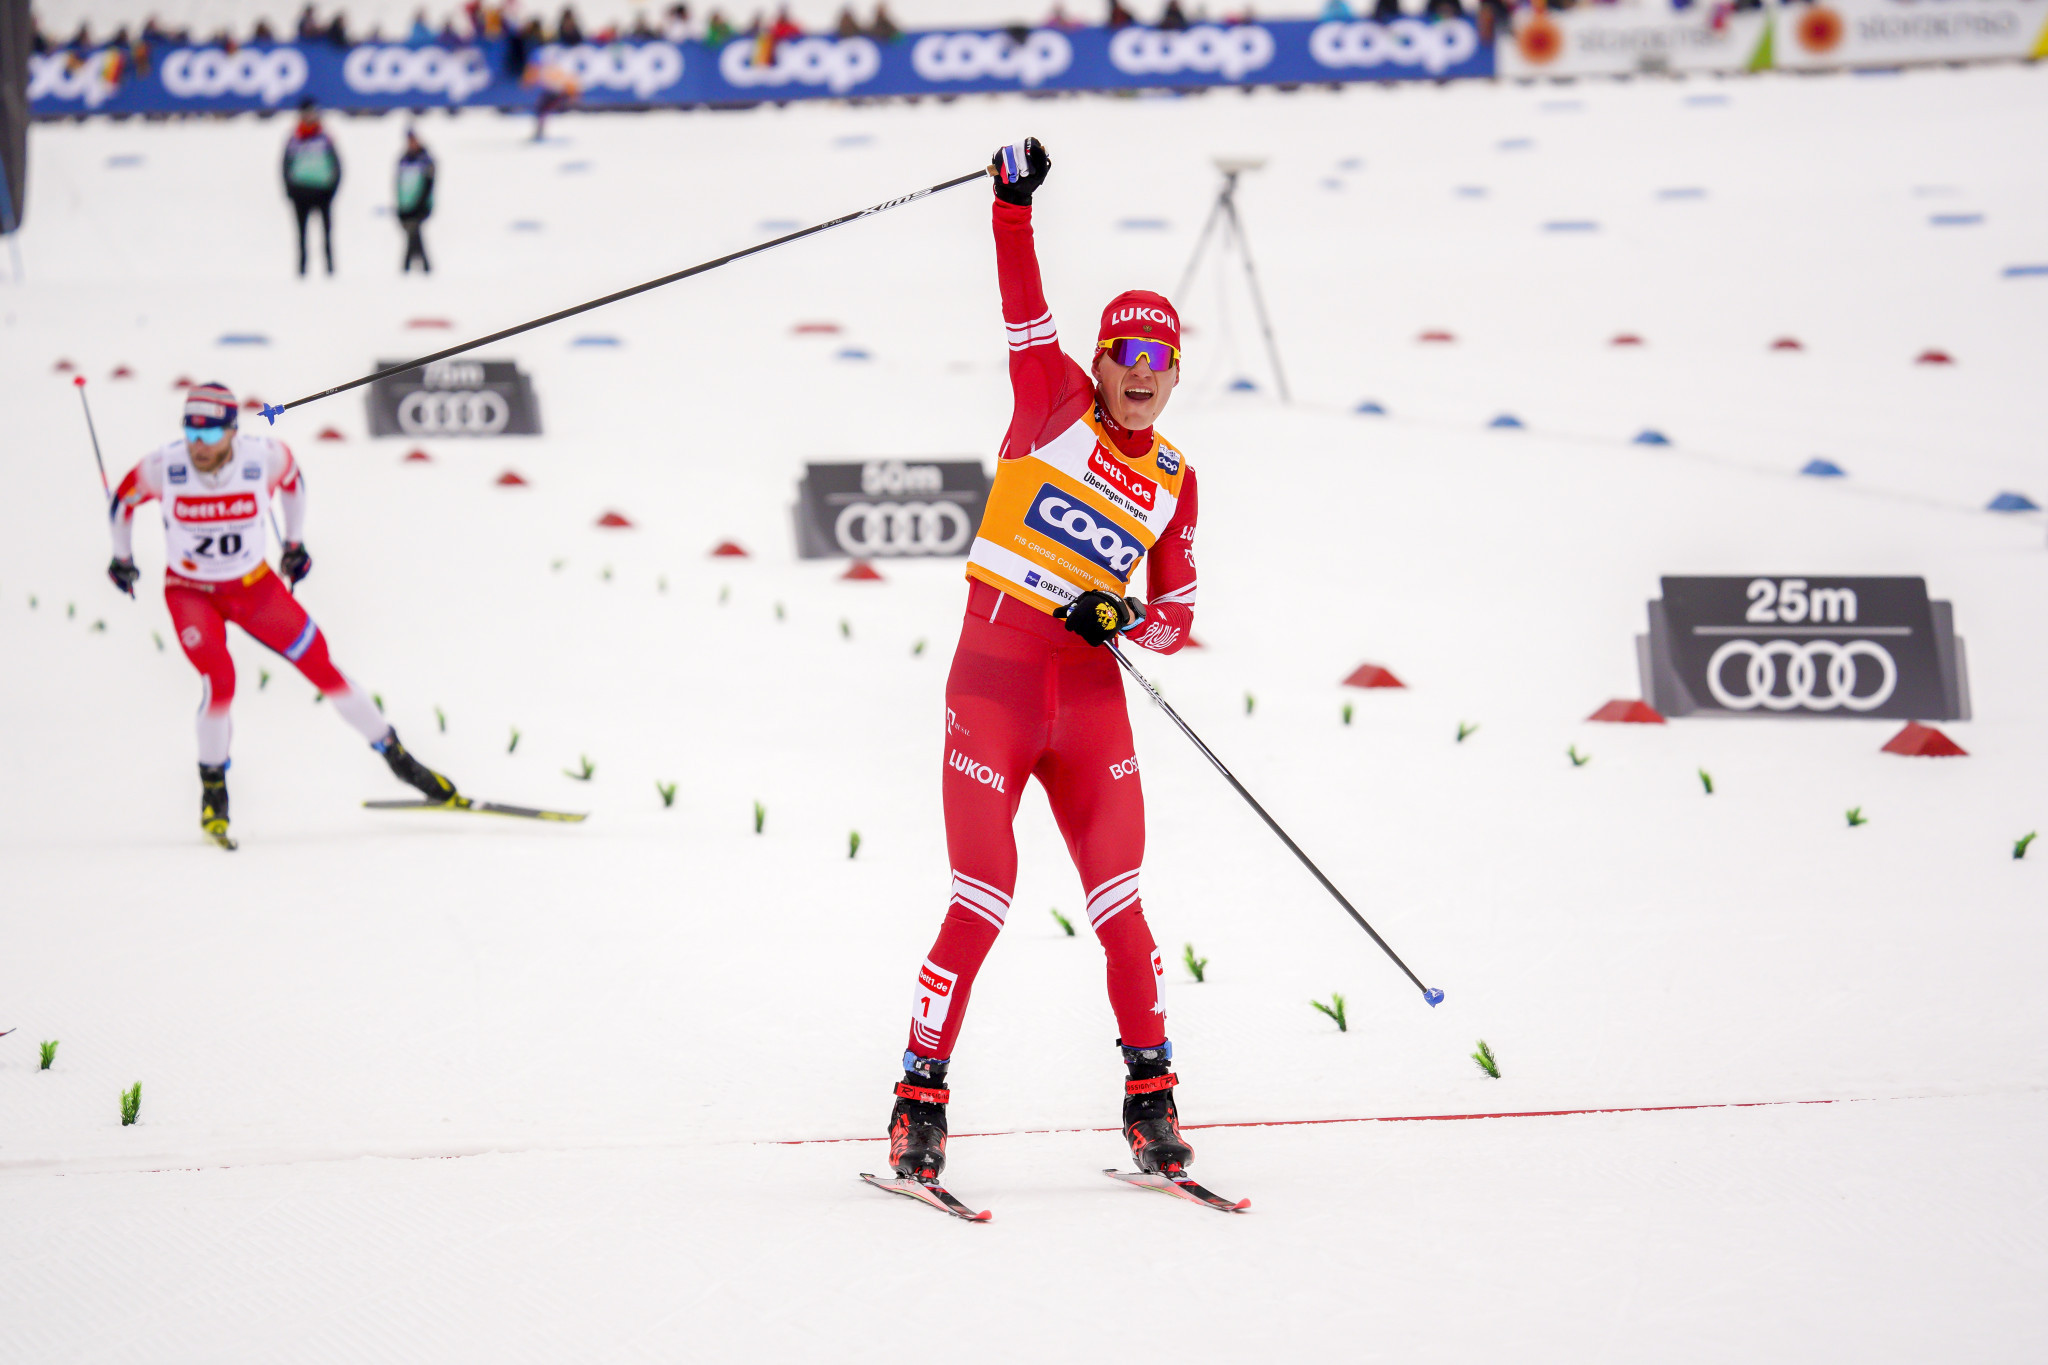 Bolshunov and Brennan take overall Cross-Country World Cup leads with Davos wins